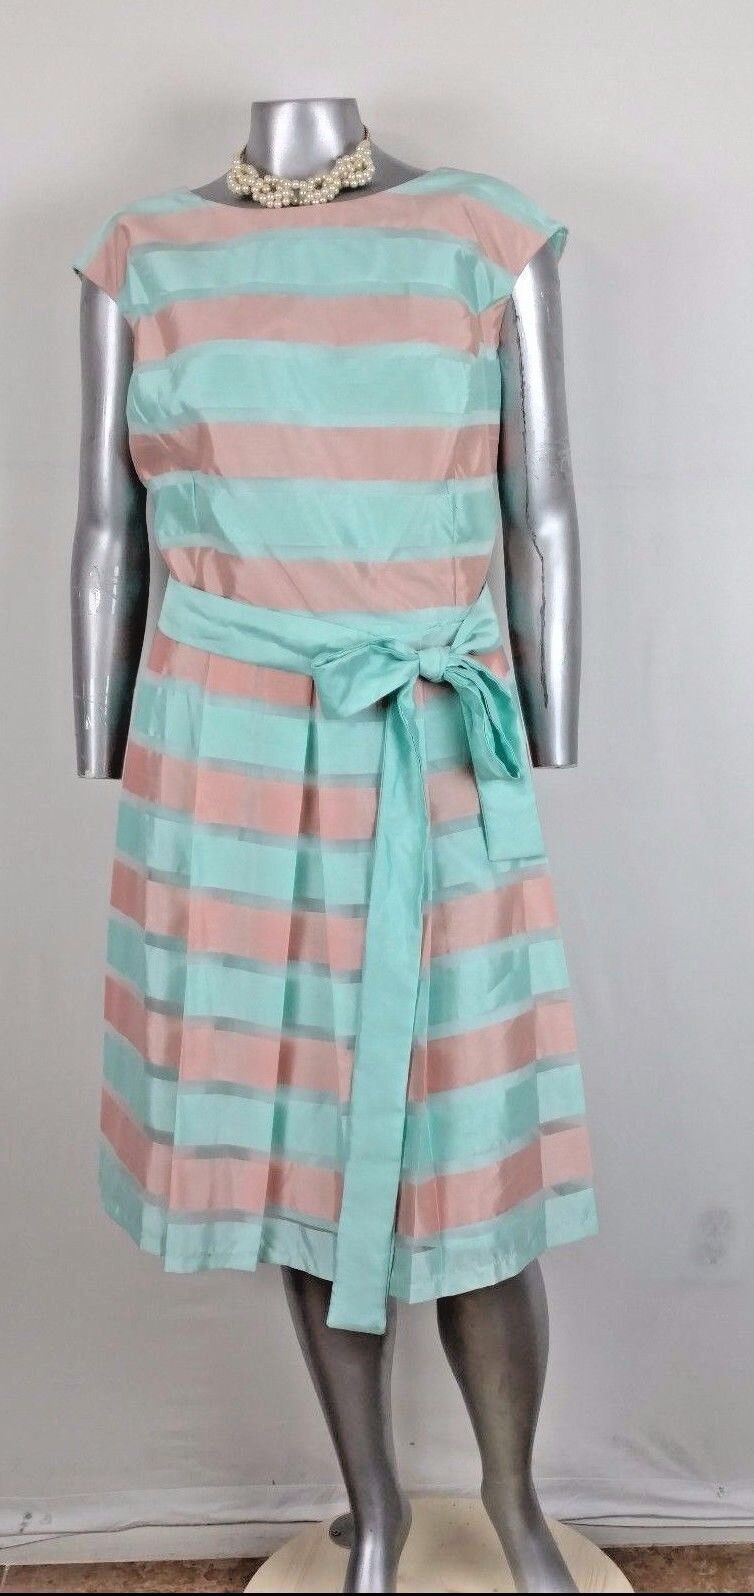 Plus Woman LESLIE FAY DRESS 24W OCCASION Satin Striped Ribbon band pleated NWT